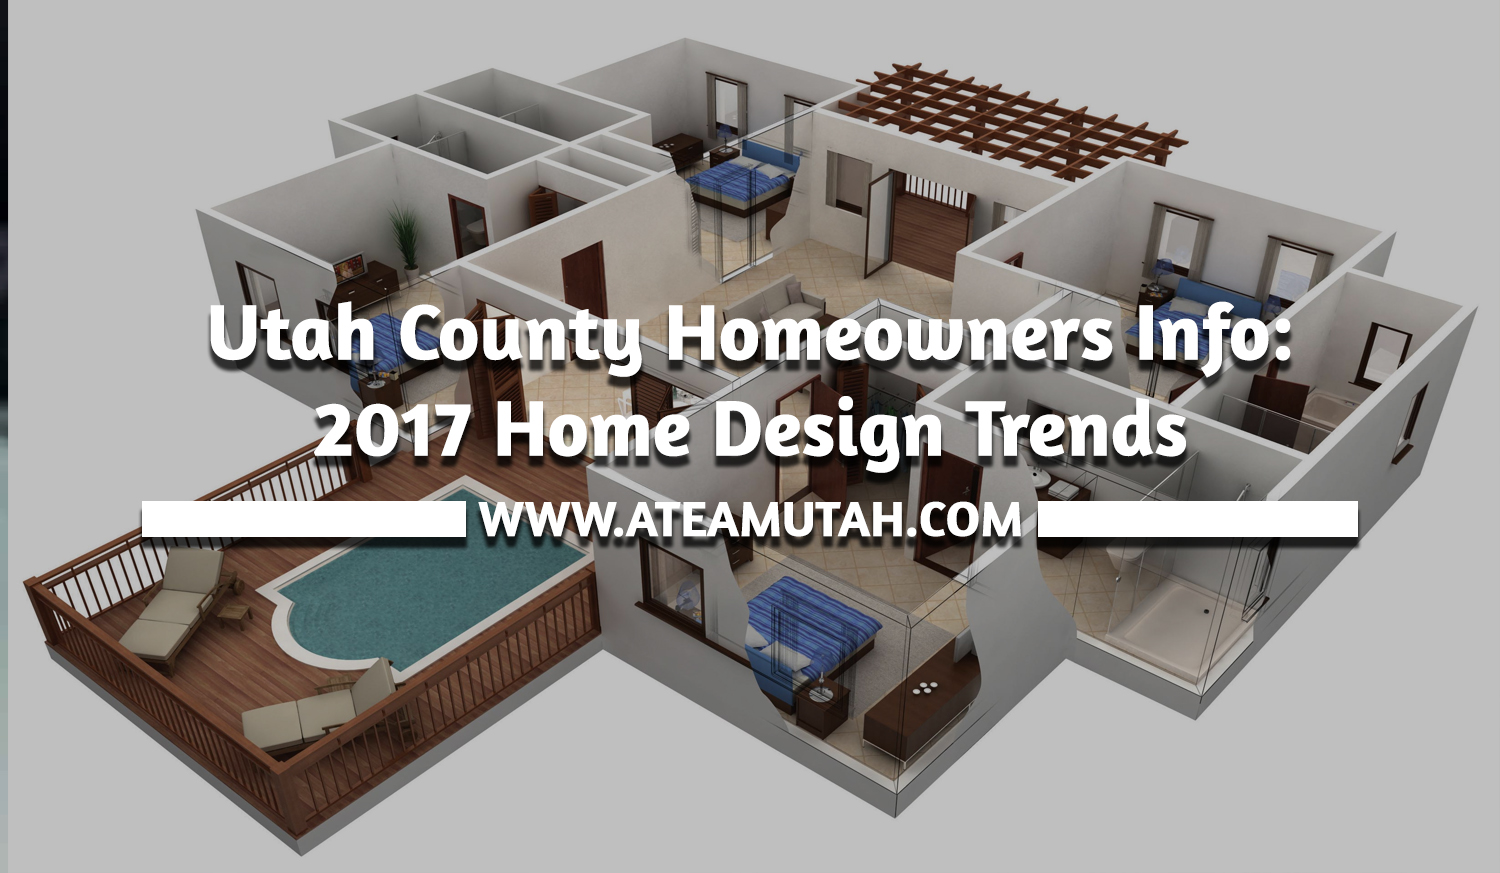 Utah county homeowners info 2017 home design trends a for Home design utah county